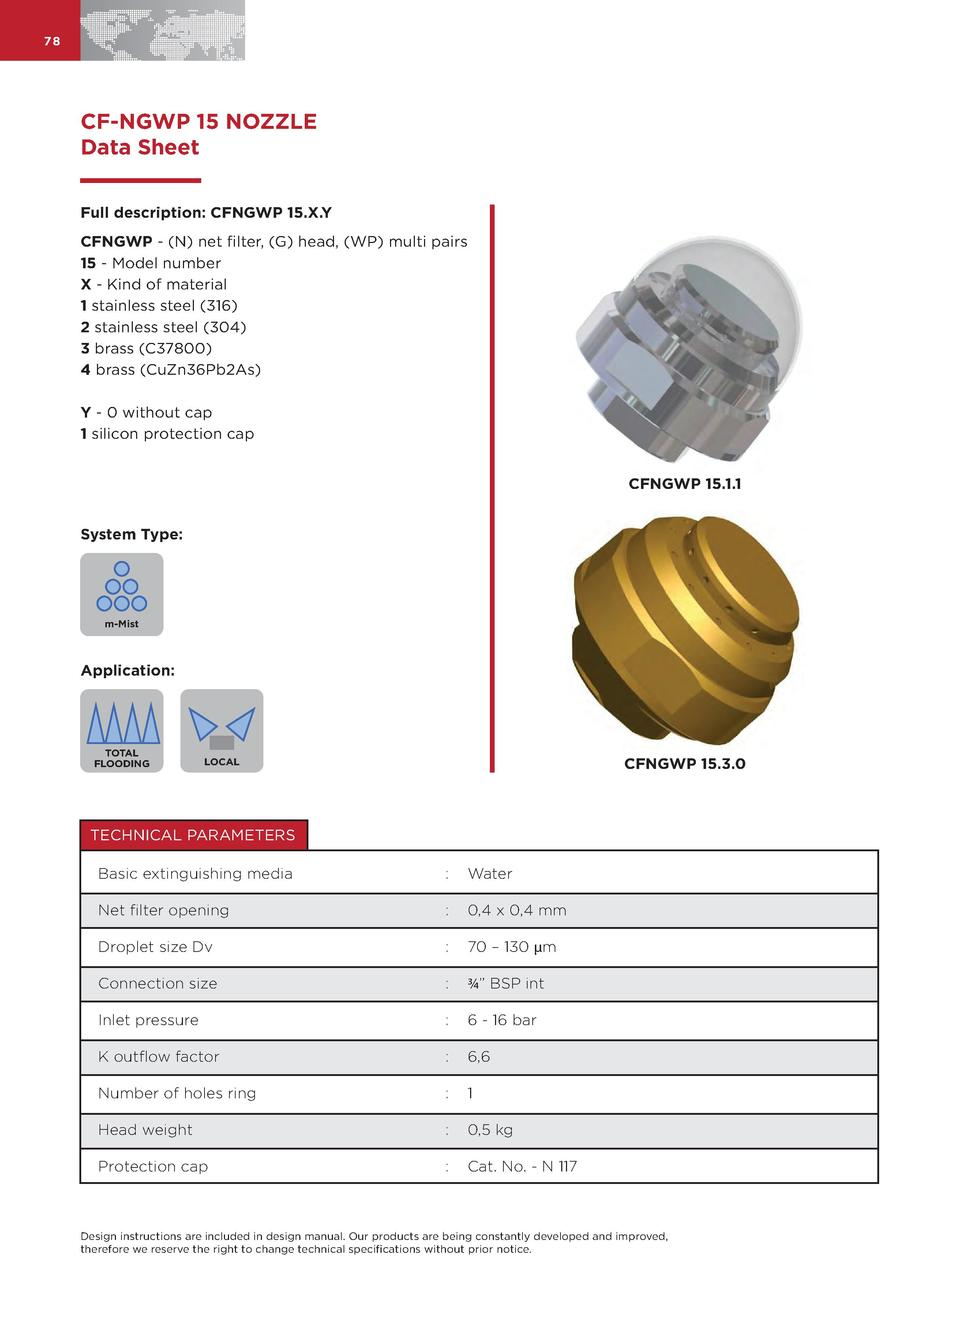 78  CF-NGWP 15 NOZZLE Data Sheet Full description  CFNGWP 15.X.Y CFNGWP -  N  net filter,  G  head,  WP  multi pairs 15 - ...